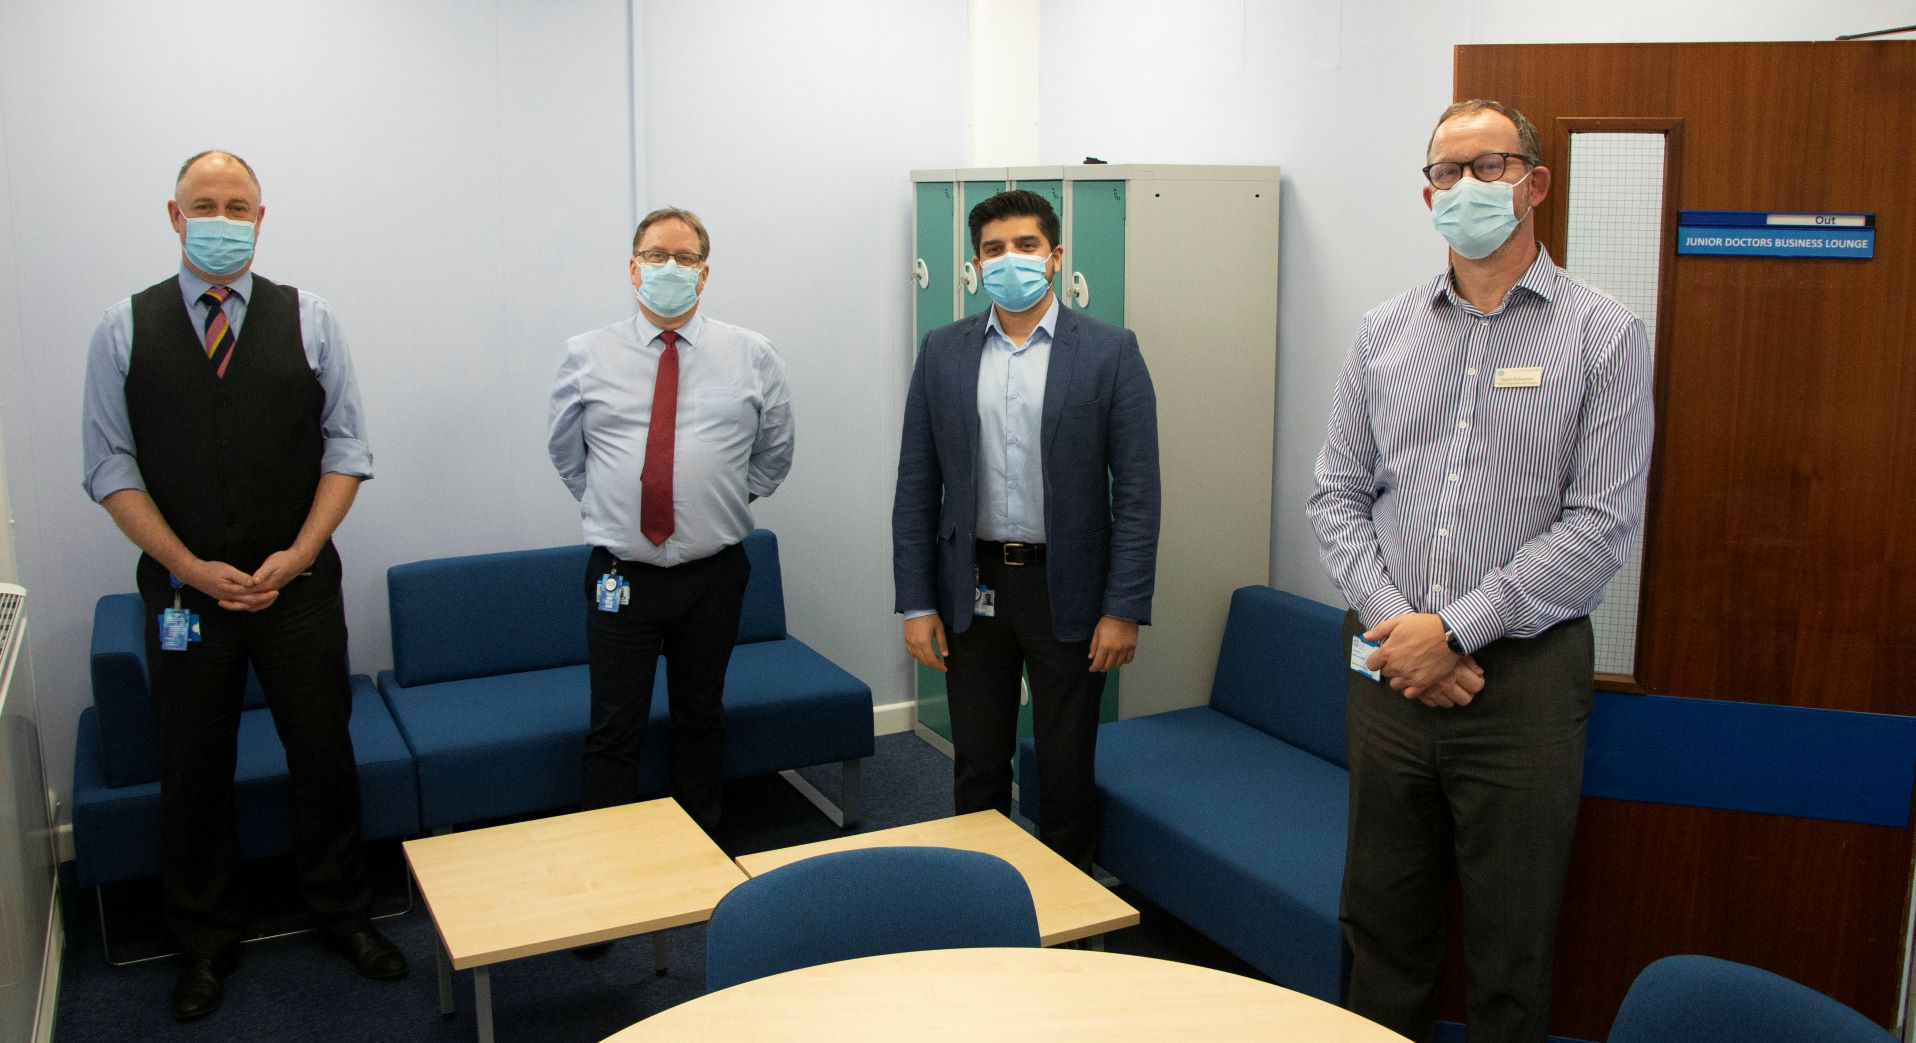 New 'business lounge' for junior doctors opens